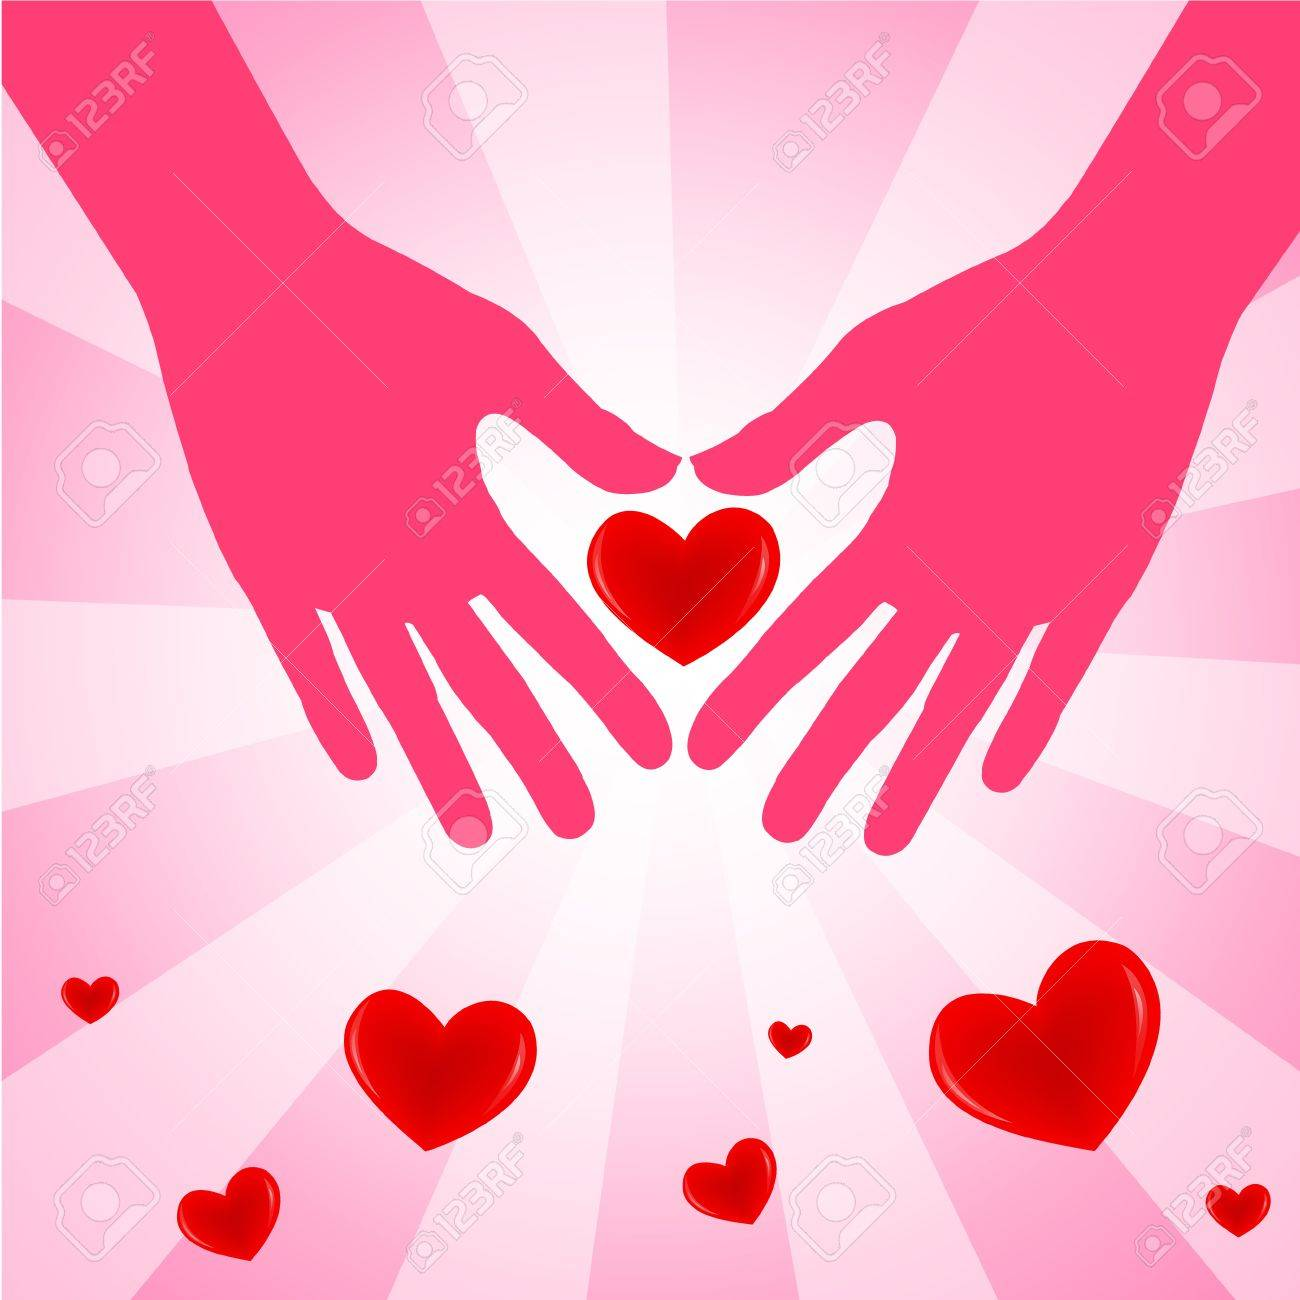 Hand with love heart on pink background  Vector illustration Stock Vector - 14996233